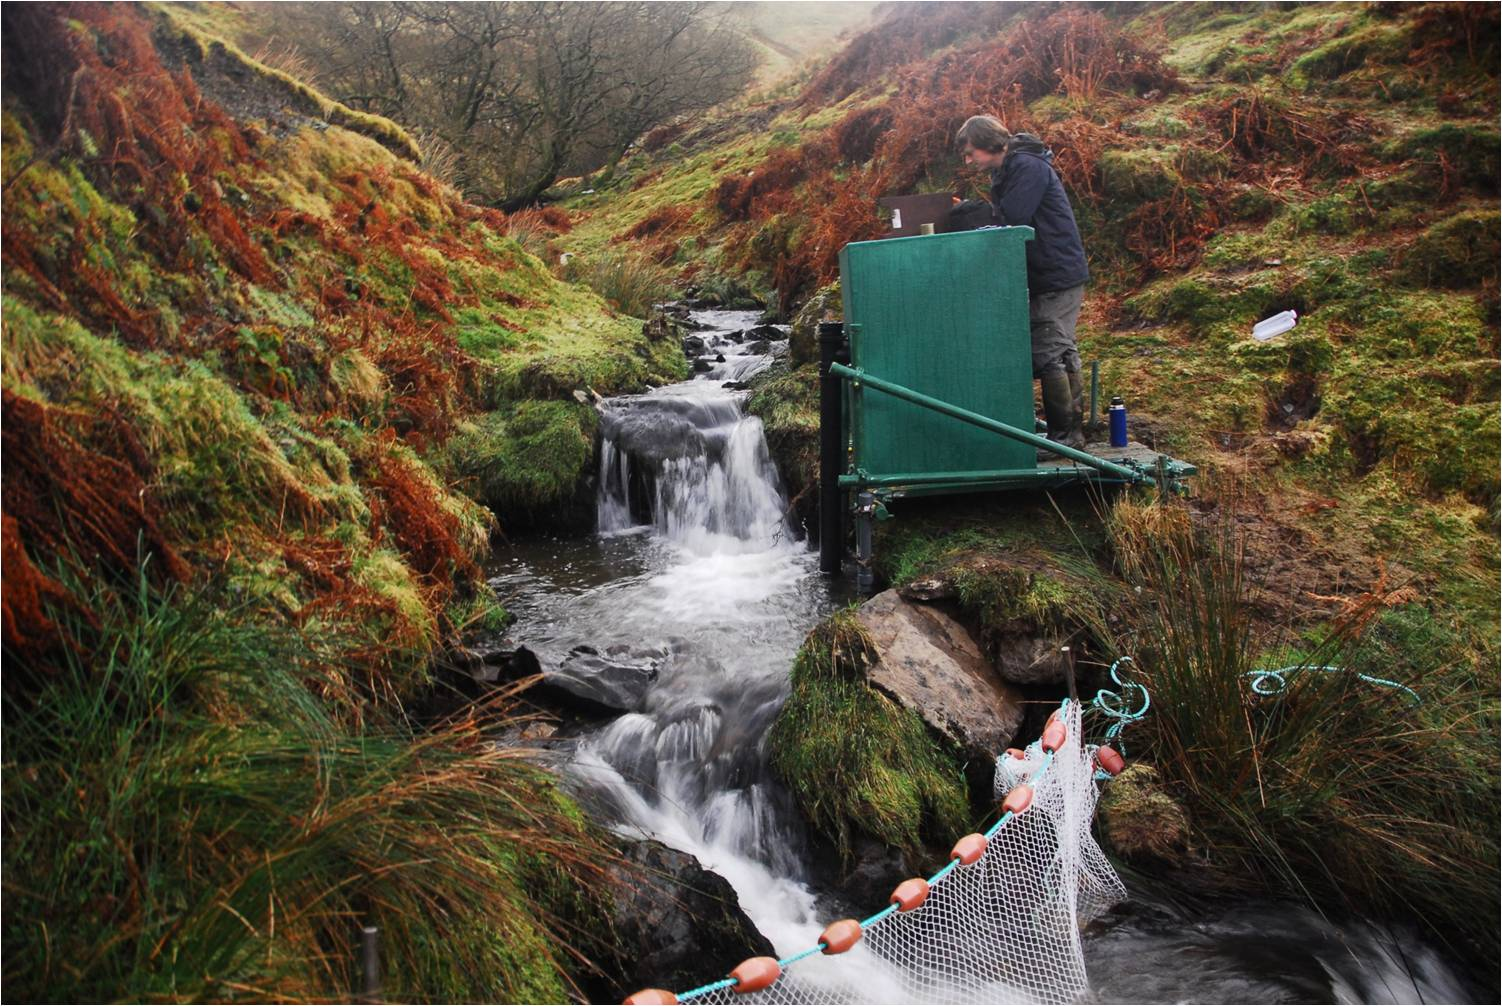 Monitoring water quality at the LI7 (Nant Rhesfa) water quality station © NA Chappell